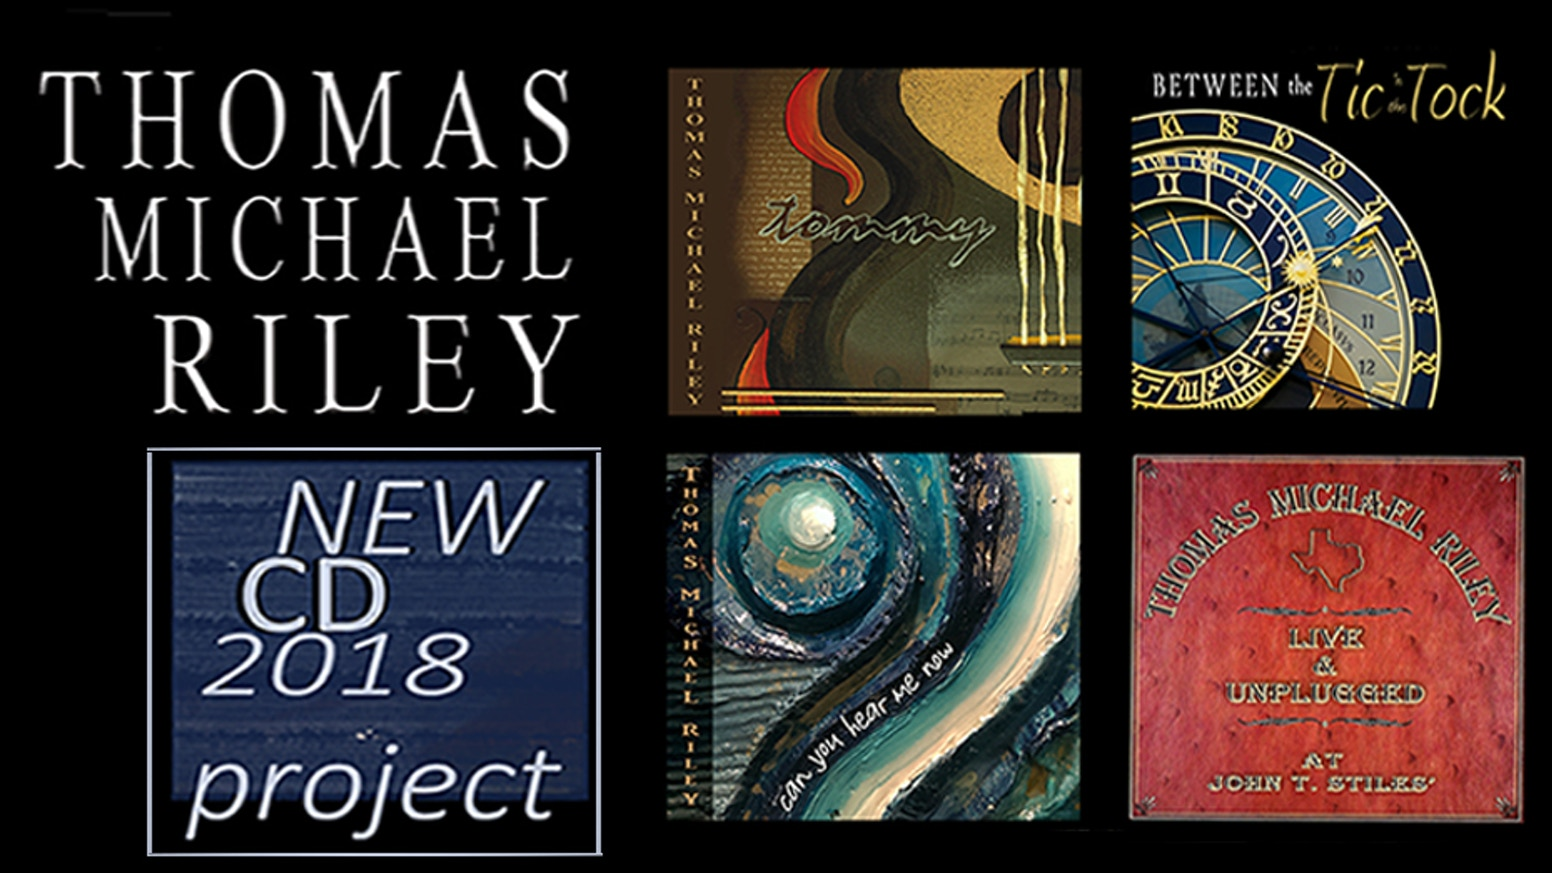 Thomas Michael Riley's New CD